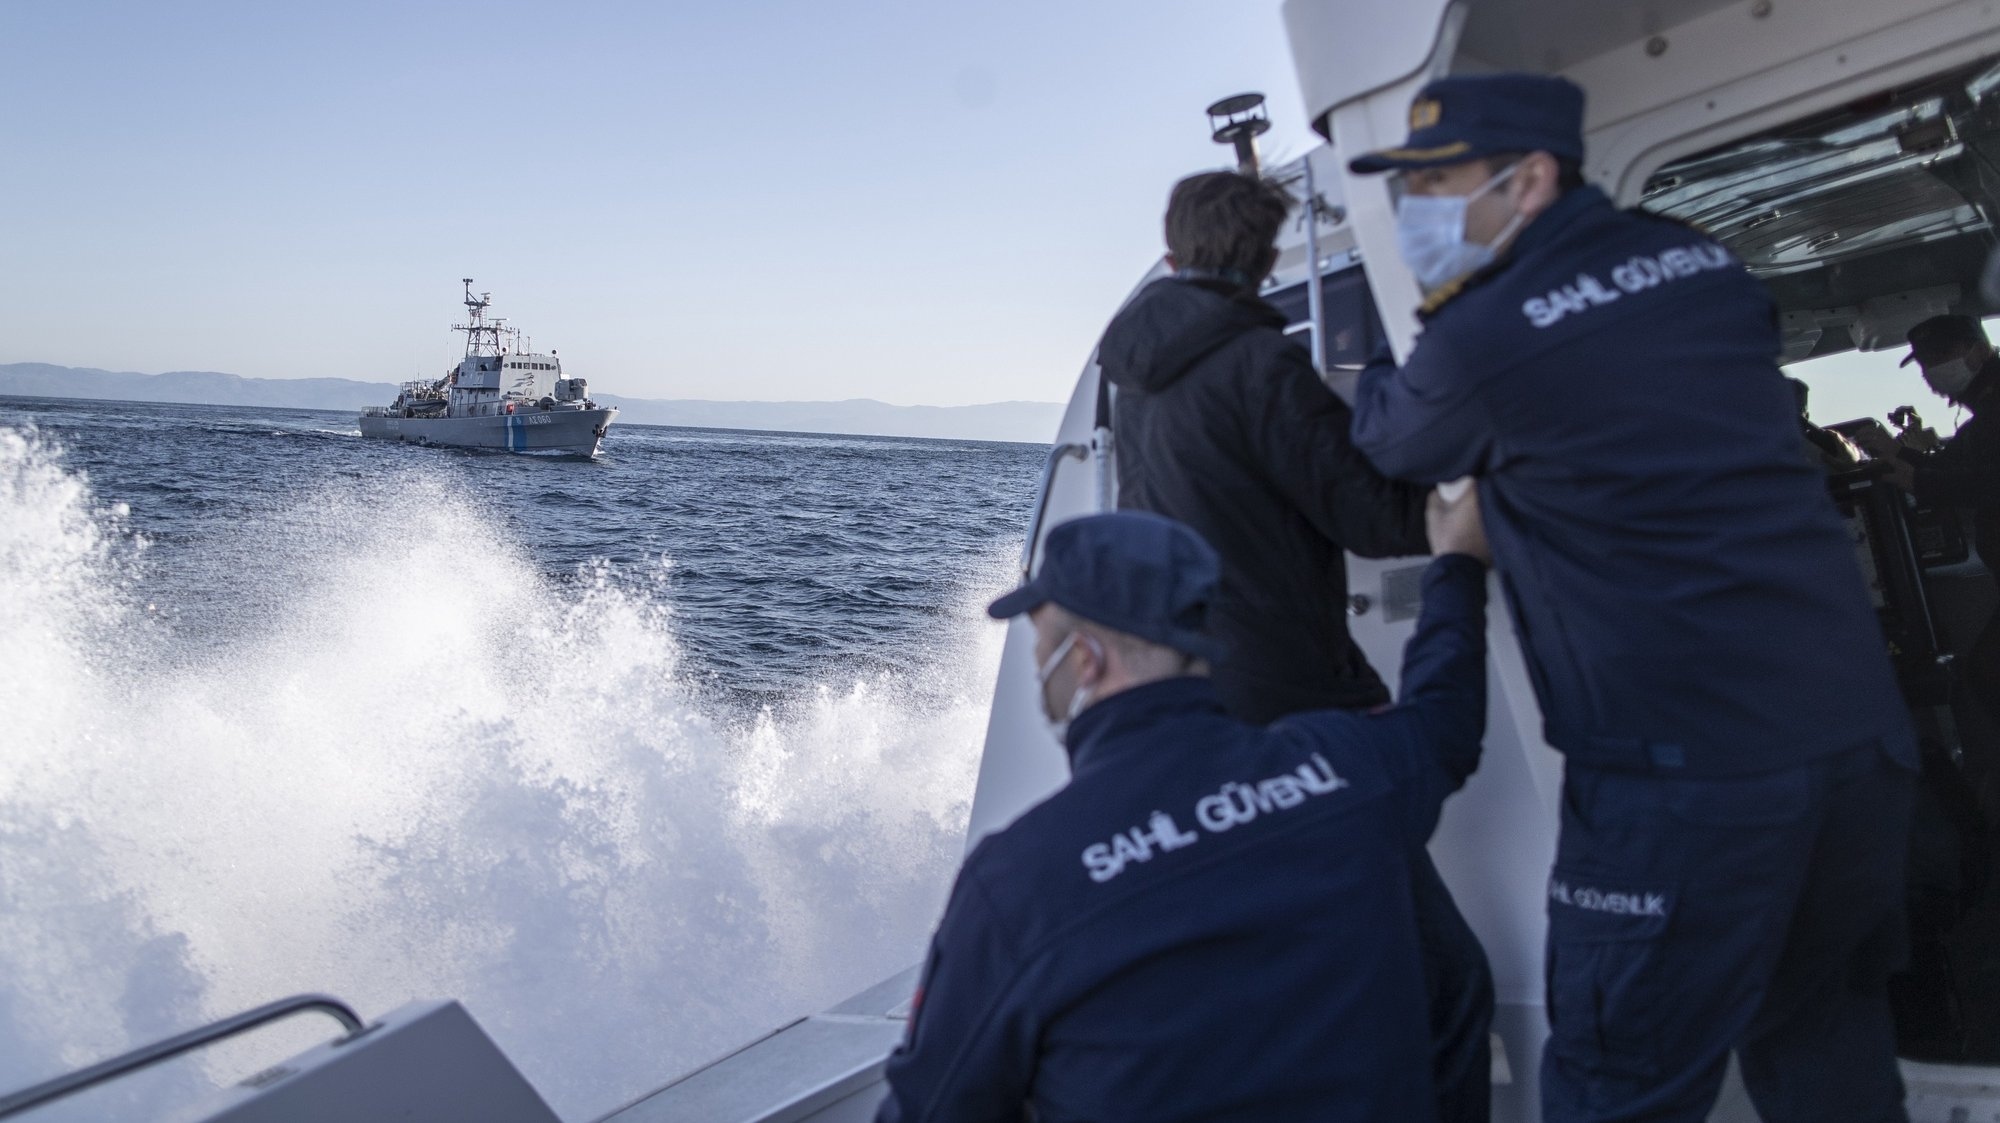 epa09131071 Members of the Turkish Coast Guard give a warning to a Greece Coast Guard ship, which allegedly crossed into Turkish waters, during a patrol to search and rescue for migrants as they pass to or pushed back from Lesvos Island of Greece offshore the Ayvalik district in Balikesir, Turkey, 10 April 2021 (issued 12 April 2012). The Greek island of Lesbos hosts one of the hotspots, an initial reception centers for migrants in European Union. Turkish authorities told epa/Efe that in 2020 around 45 percent of migrants rescued in the Aegean Sea had been pushed back from Greek territory. Most common cases involve migrant vessels being stopped by a Greek patrol when entering Greek waters, but the Turkish coastguard says it has heard lots of migrants describing 'delayed pushback,' when people are returned to the sea days after they reached Lesbos. According to Turkish officials, in this case, a Greek patrol carries the detained migrants to the limit of Greek territorial waters before putting them in a life raft and alerting Ankara.  Since the beginning of 2021, Turkey has rescued around 2,700 migrants in the Aegean Sea, and some 1,900 migrants from a pushback.  The Norwegian NGO Aegean Boat Report claims, some 558 people have been abandoned on 35 life rafts at sea so far in 2021. Some such incidents have ended with fatalities, the organizations claimed.  EPA/ERDEM SAHIN  ATTENTION: This Image is part of a PHOTO SET